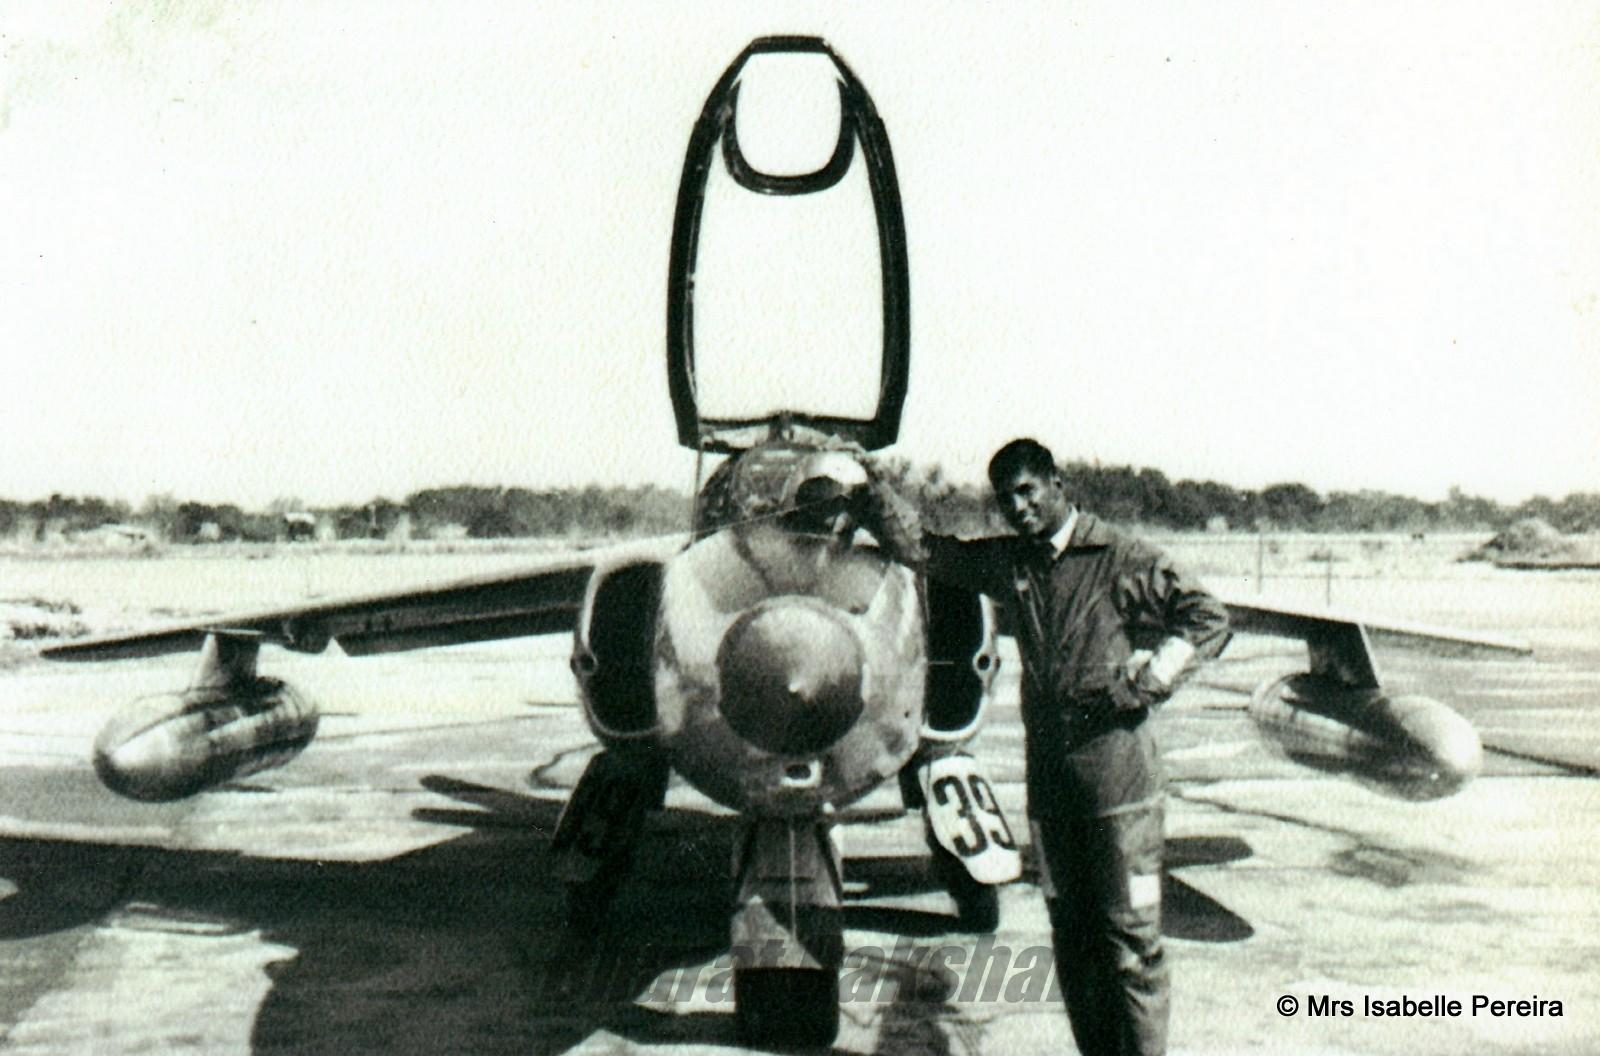 Lawrie with his beloved Gnat.